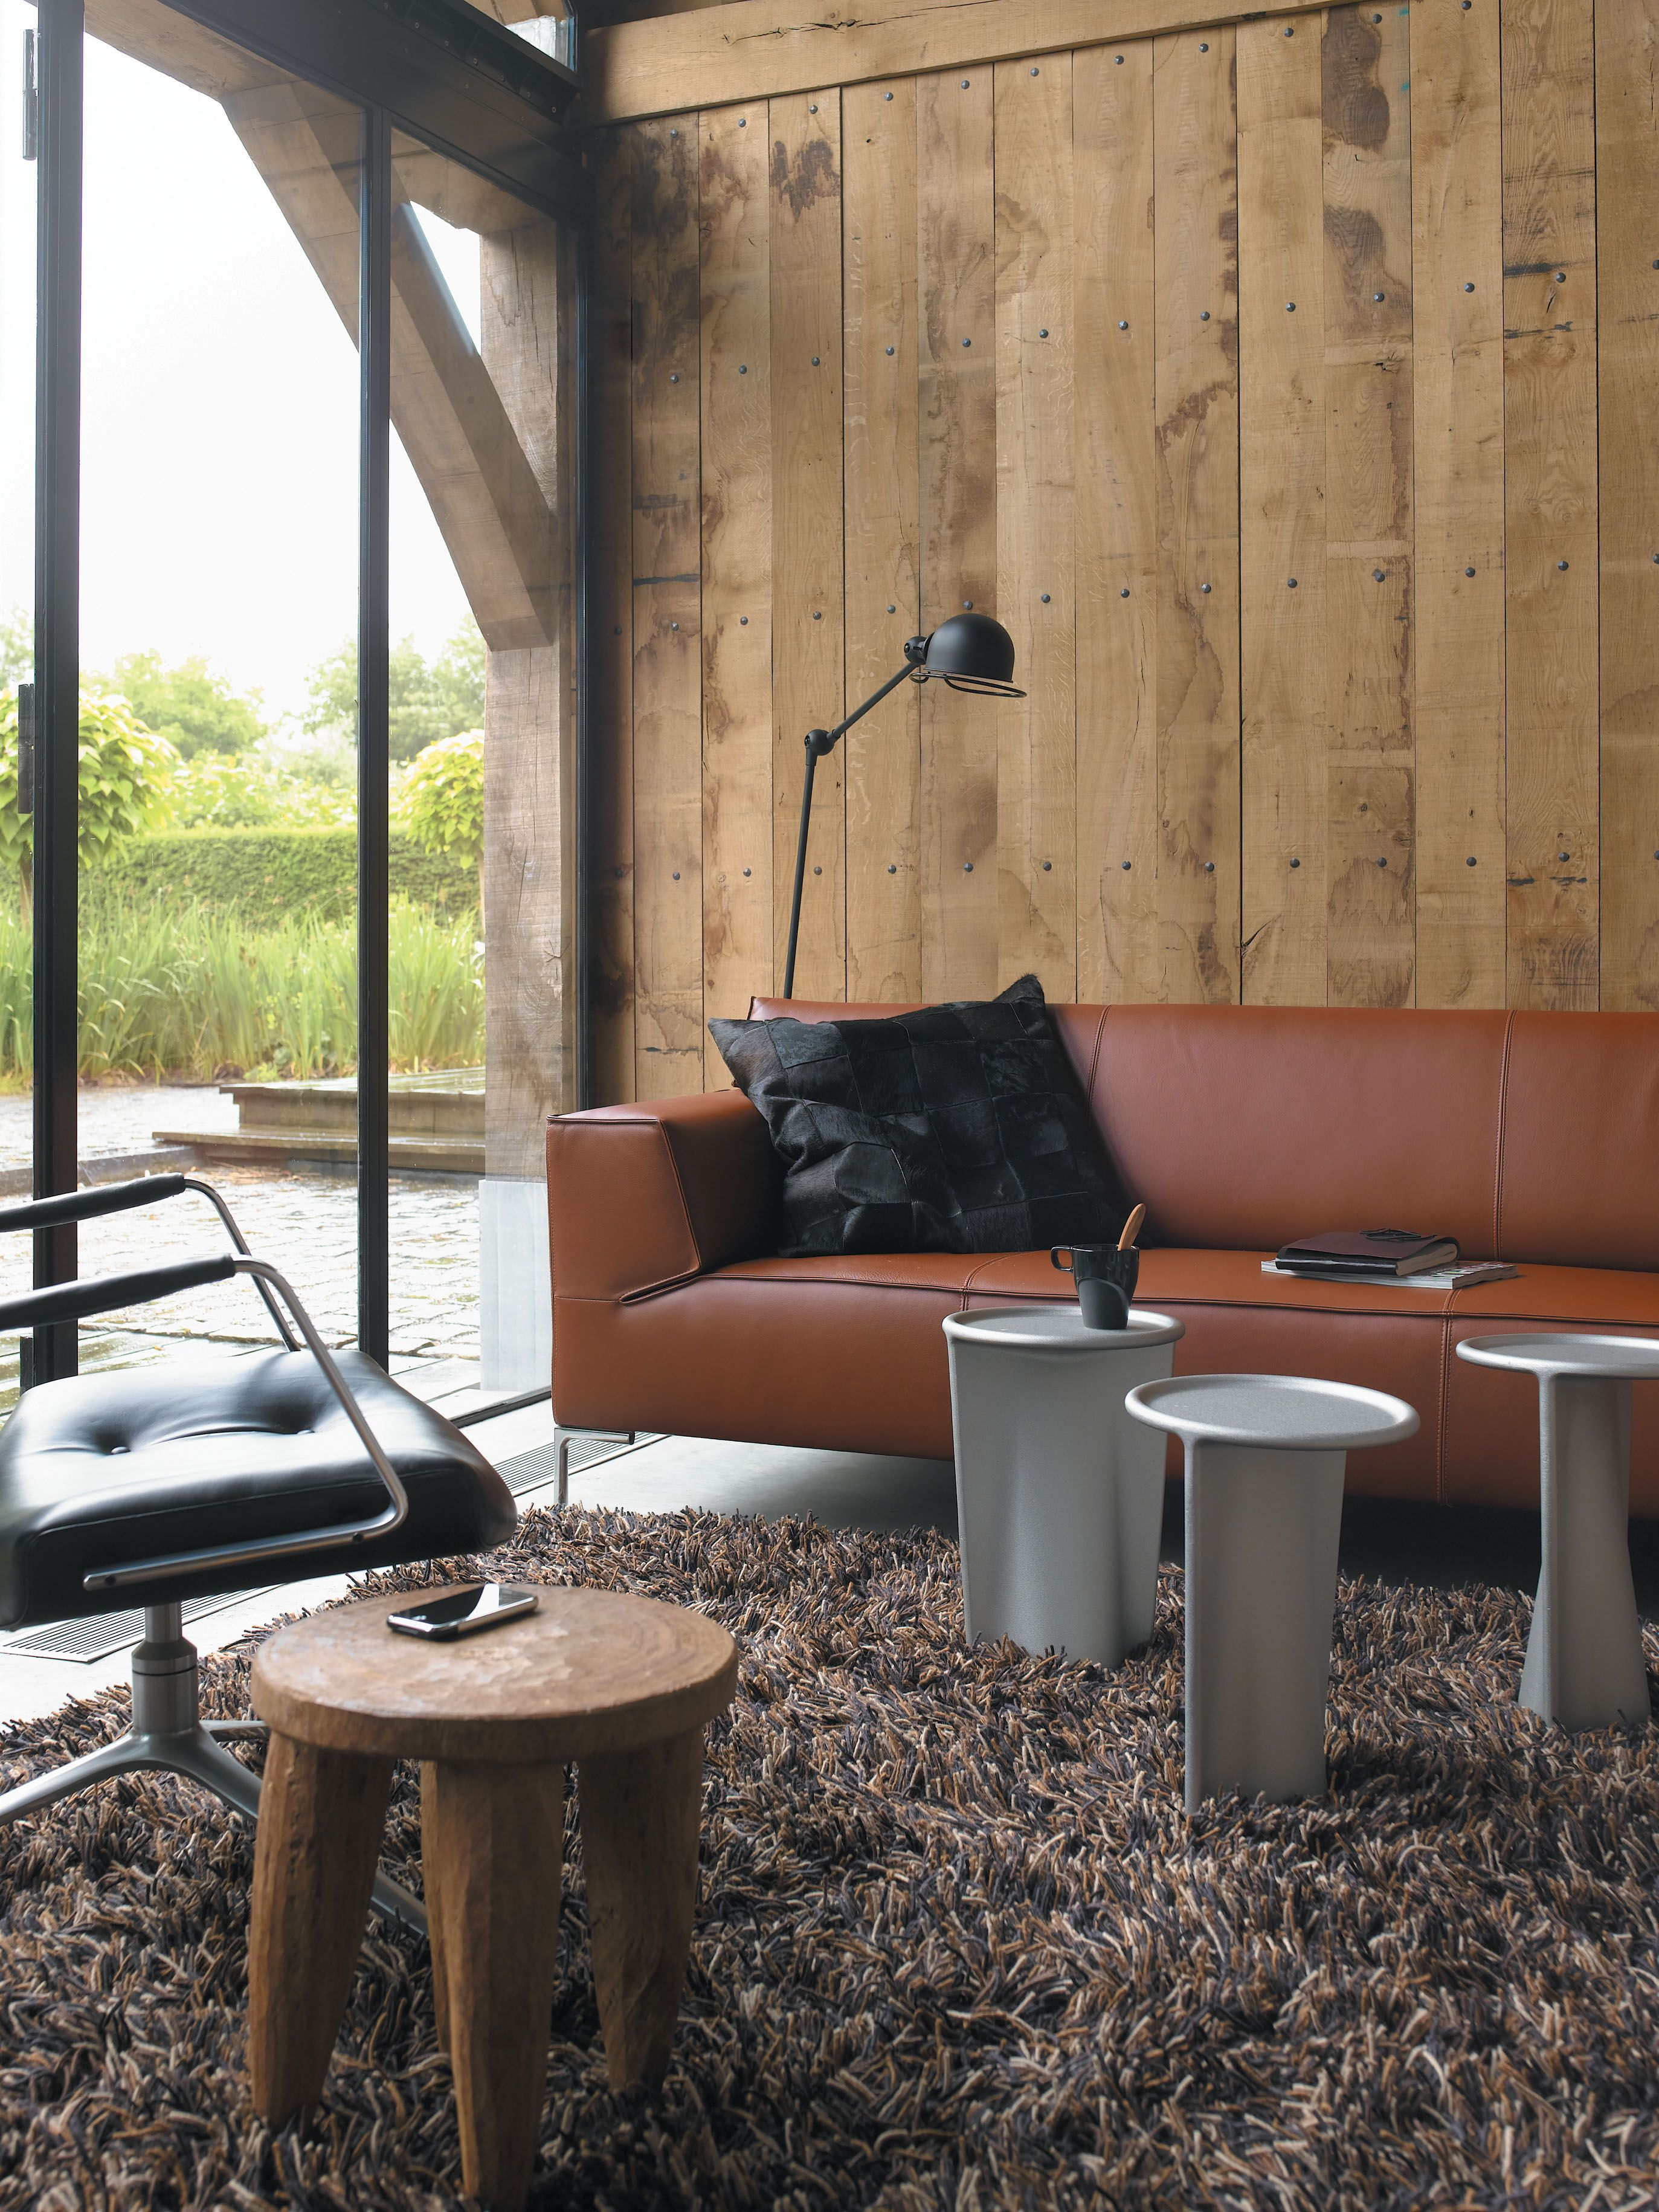 Design Bank Roderick Vos.Bloq Sofa By Roderick Vos Shown In Basque 32 Rust